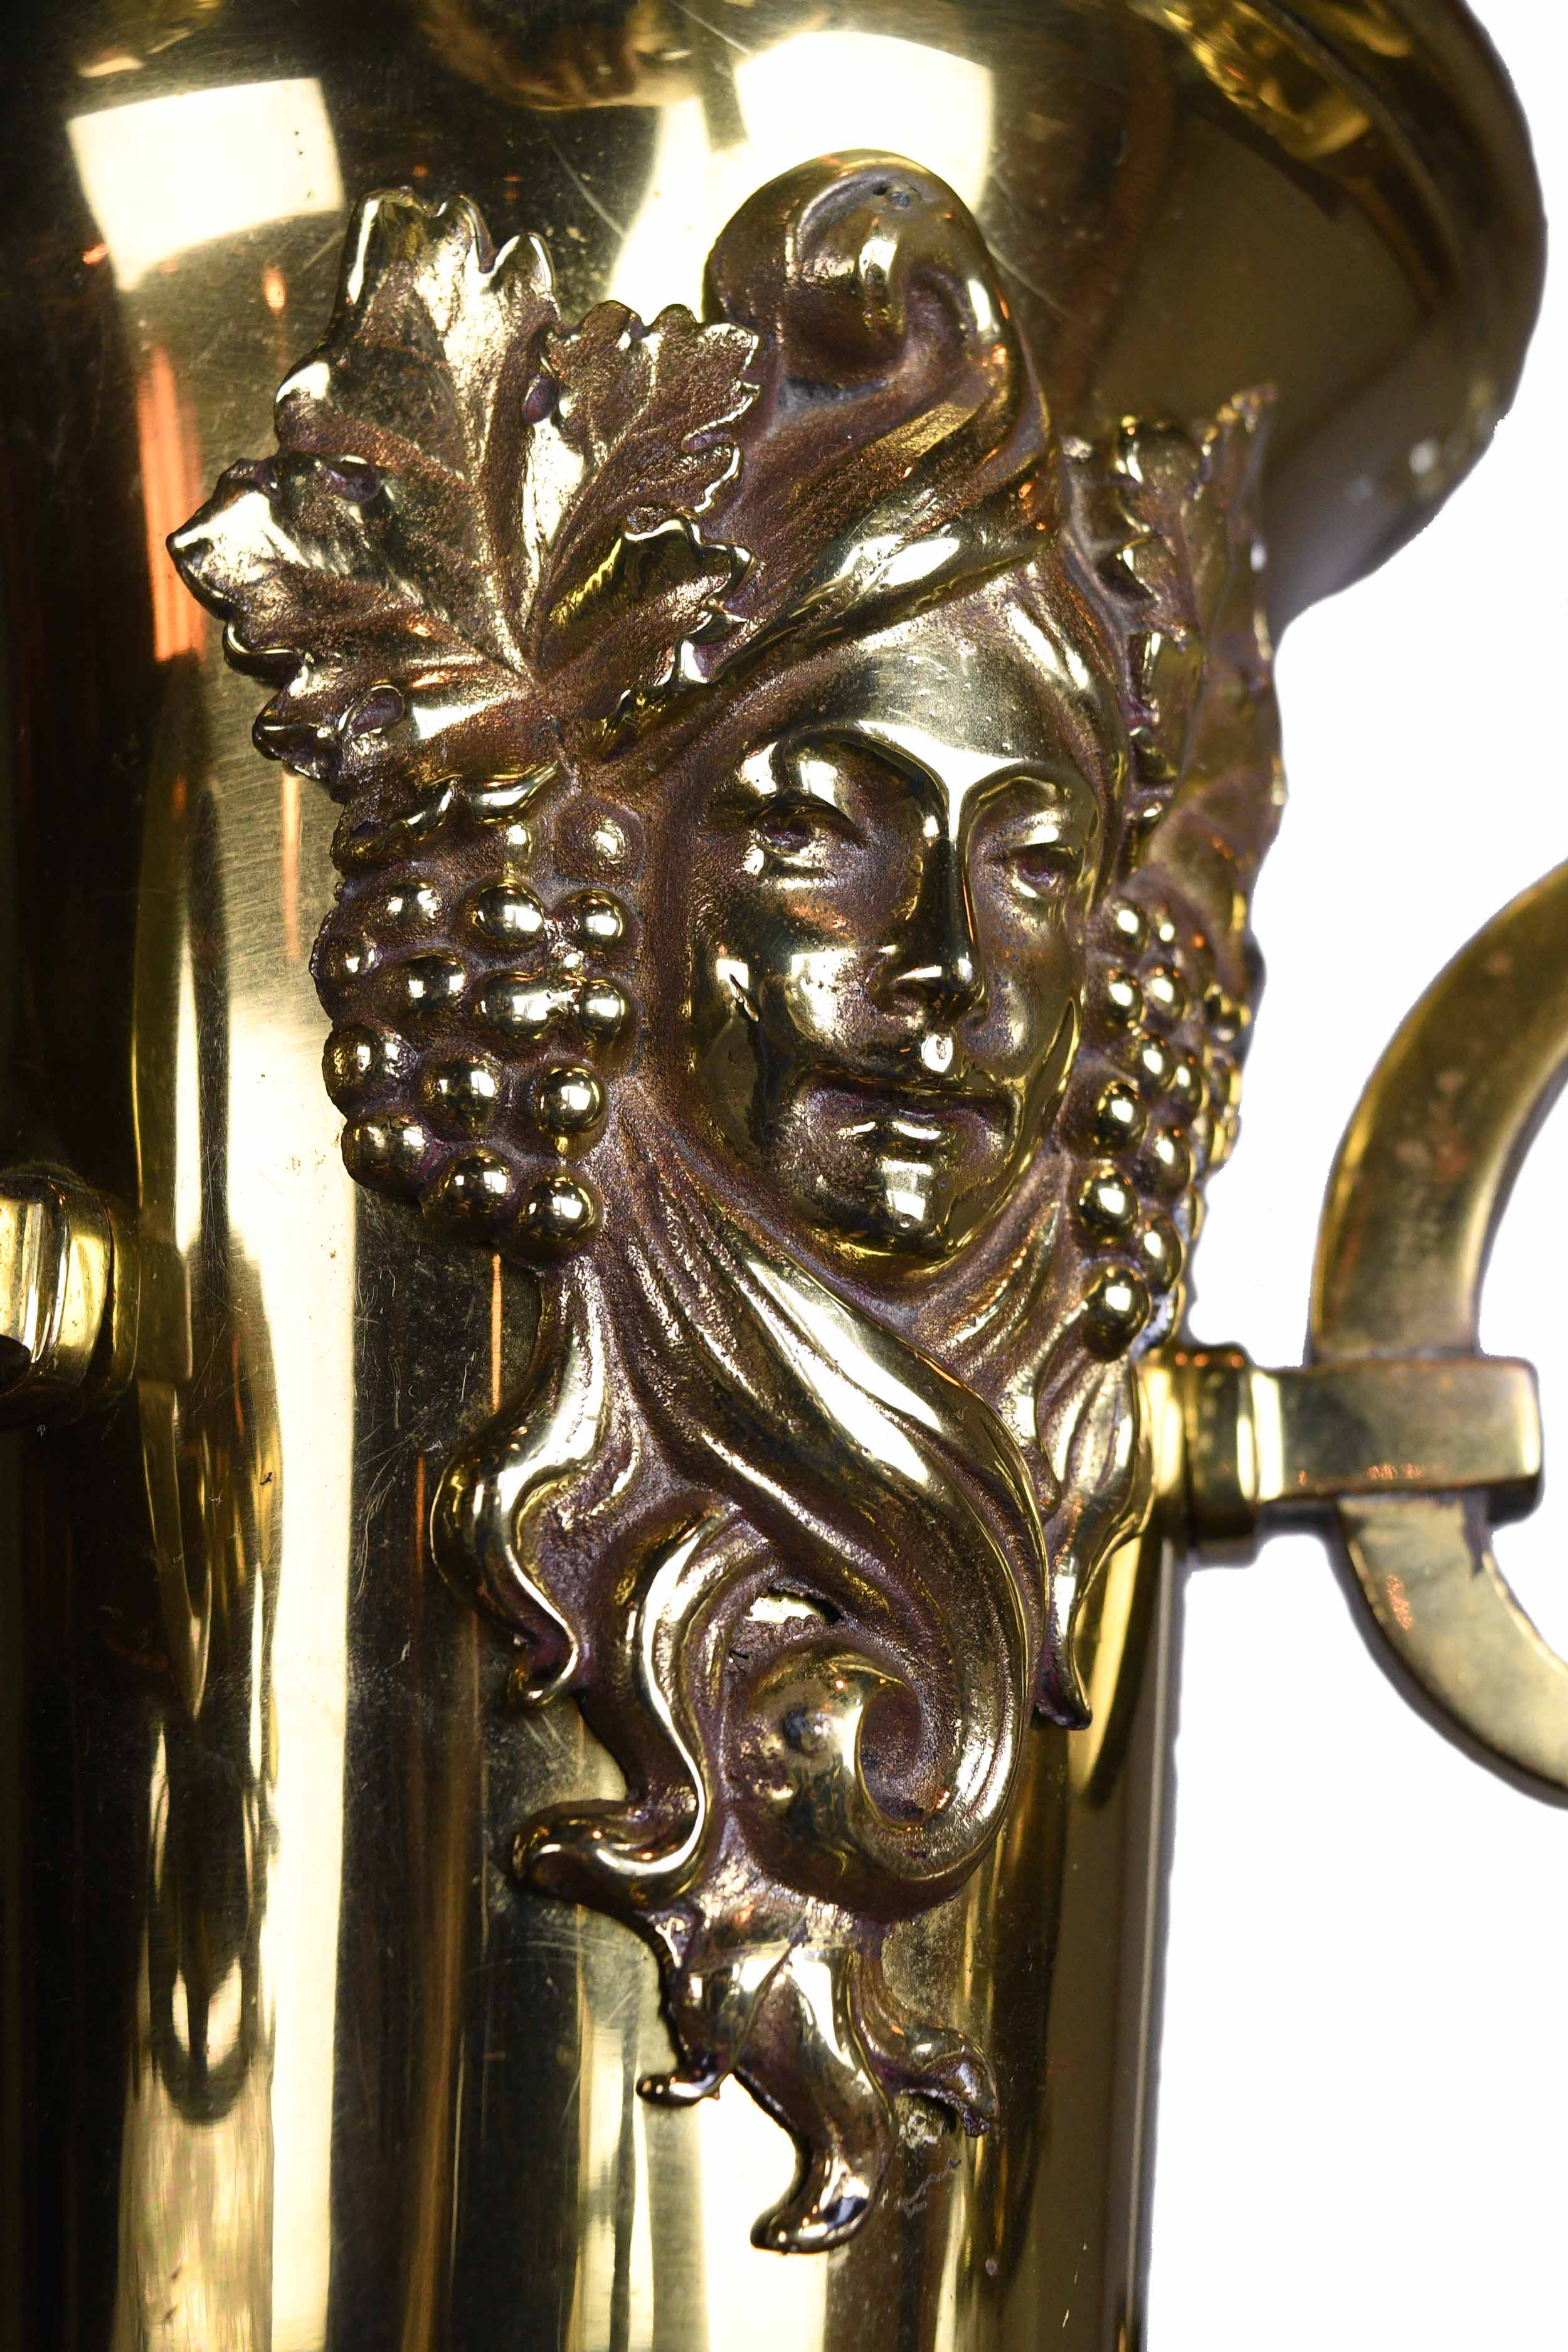 45264-brass-chandelier-with-cameo-face-detail.jpg